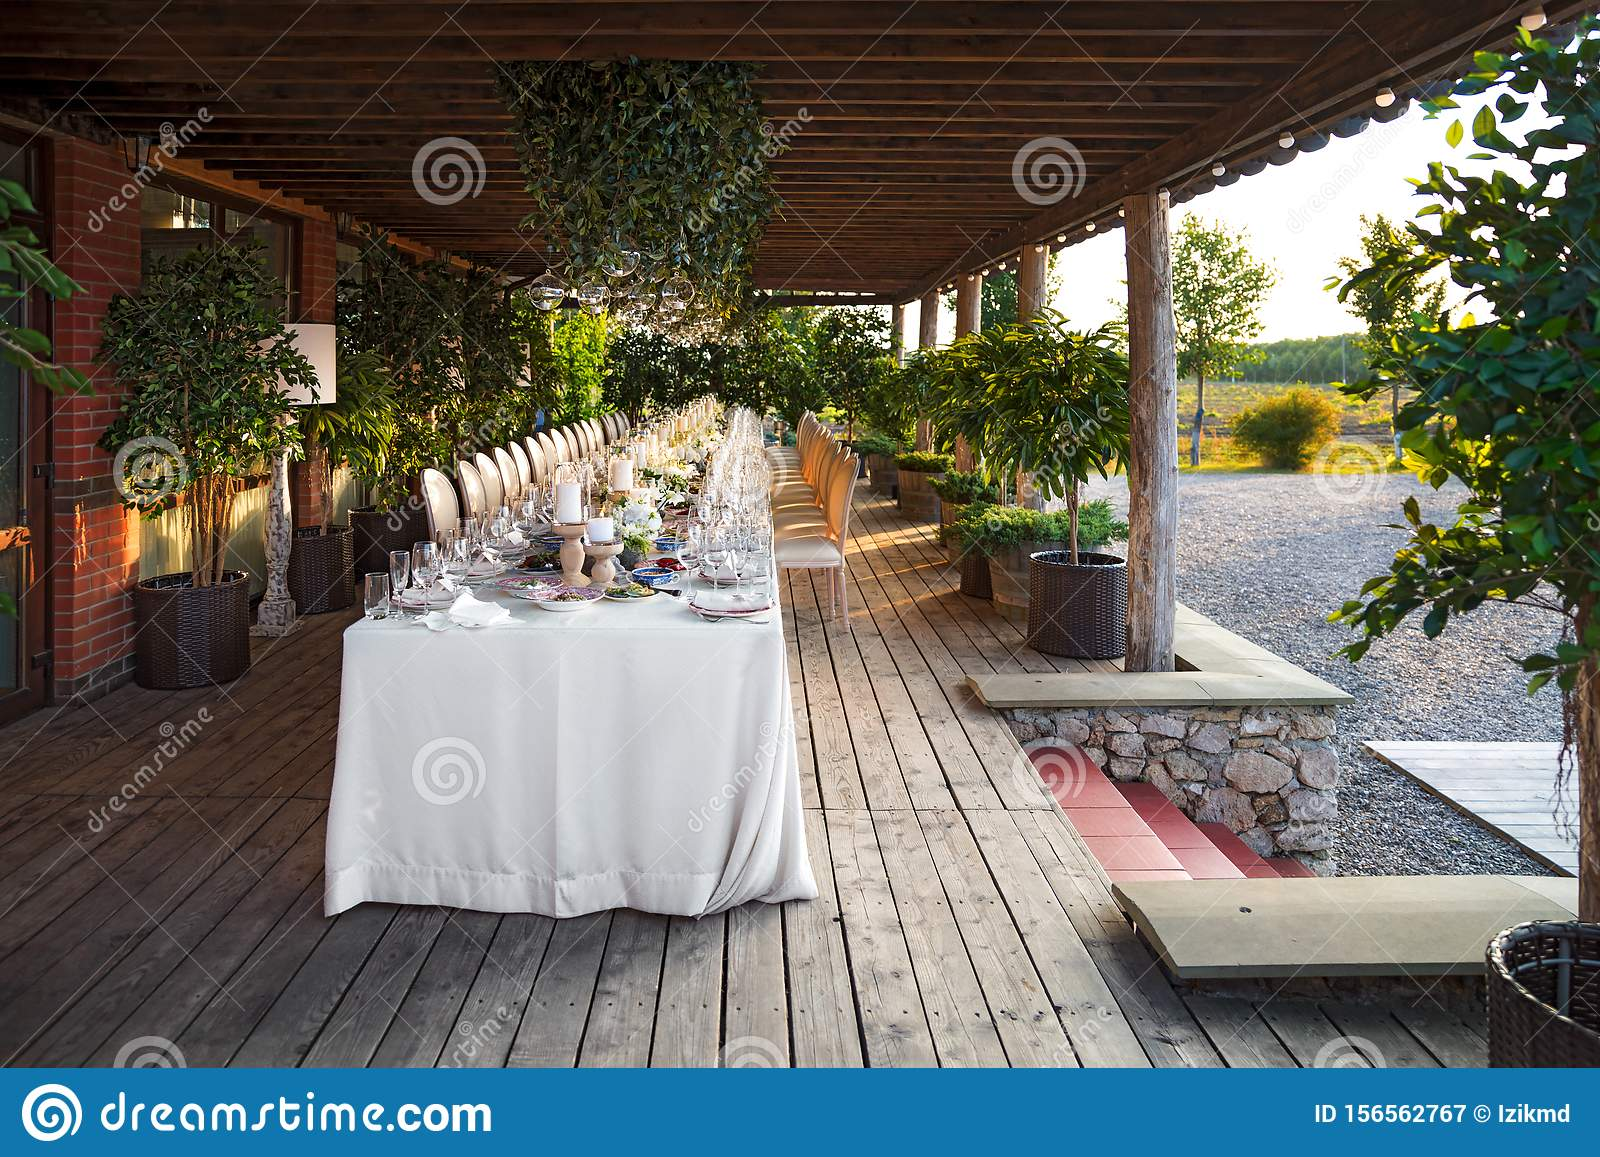 Outdoor Wedding Celebration At A Restaurant Festive Table Setting Catering Wedding In Rustic Style In Summer Stock Image Image Of Background Bouquet 156562767